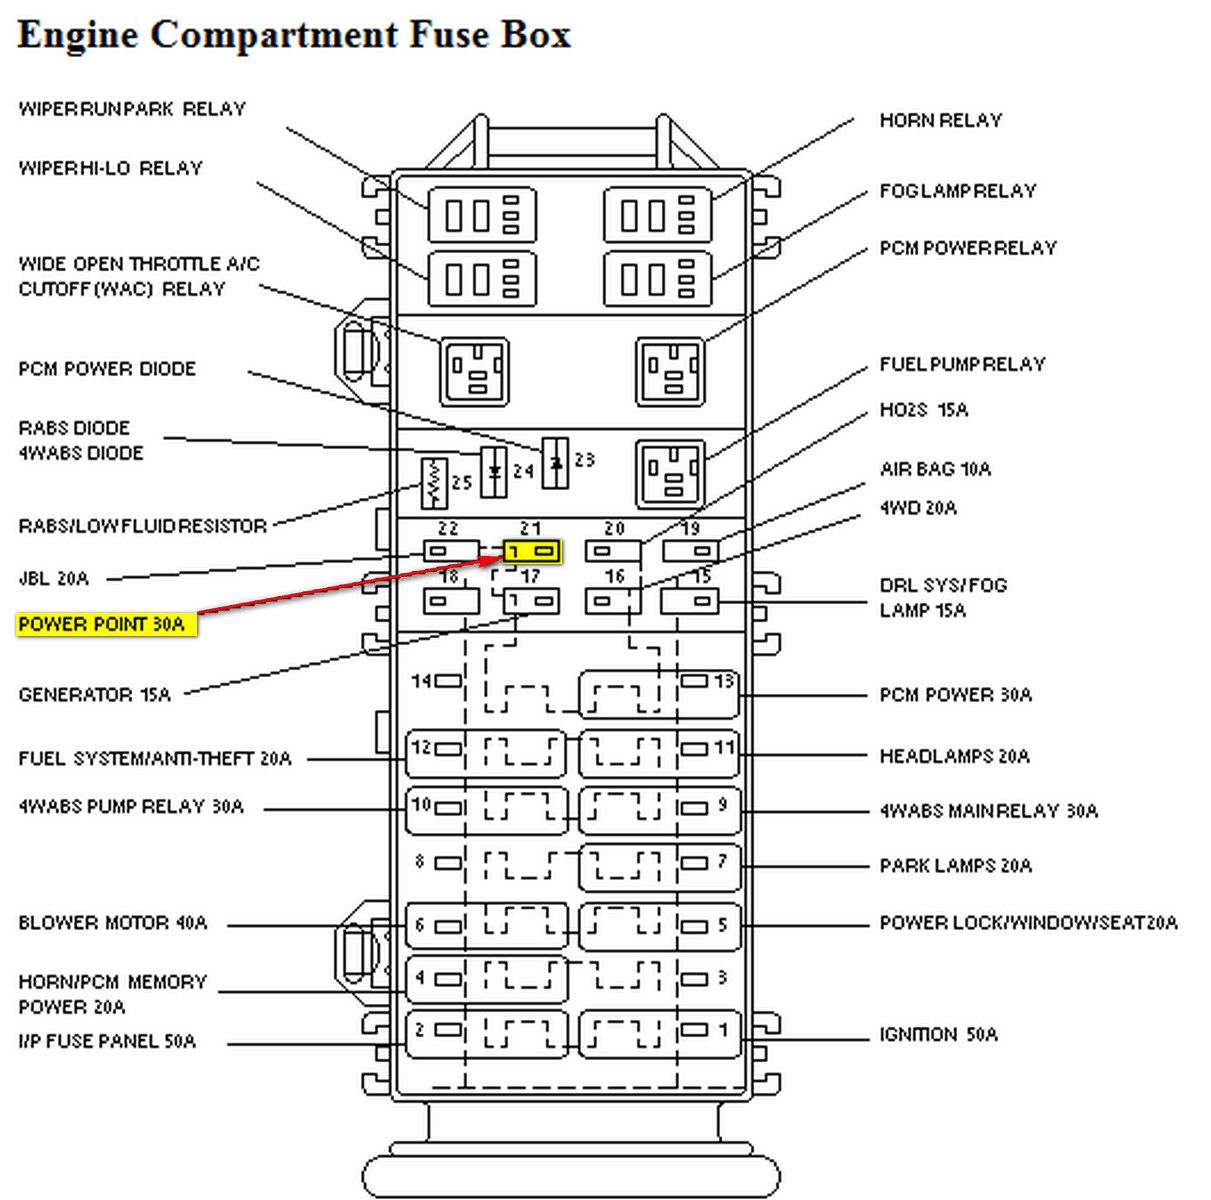 wrg 4838 2002 ford f 150 fx4 fuse panel diagram1997 ford ranger fuse box diagram [ 1211 x 1200 Pixel ]